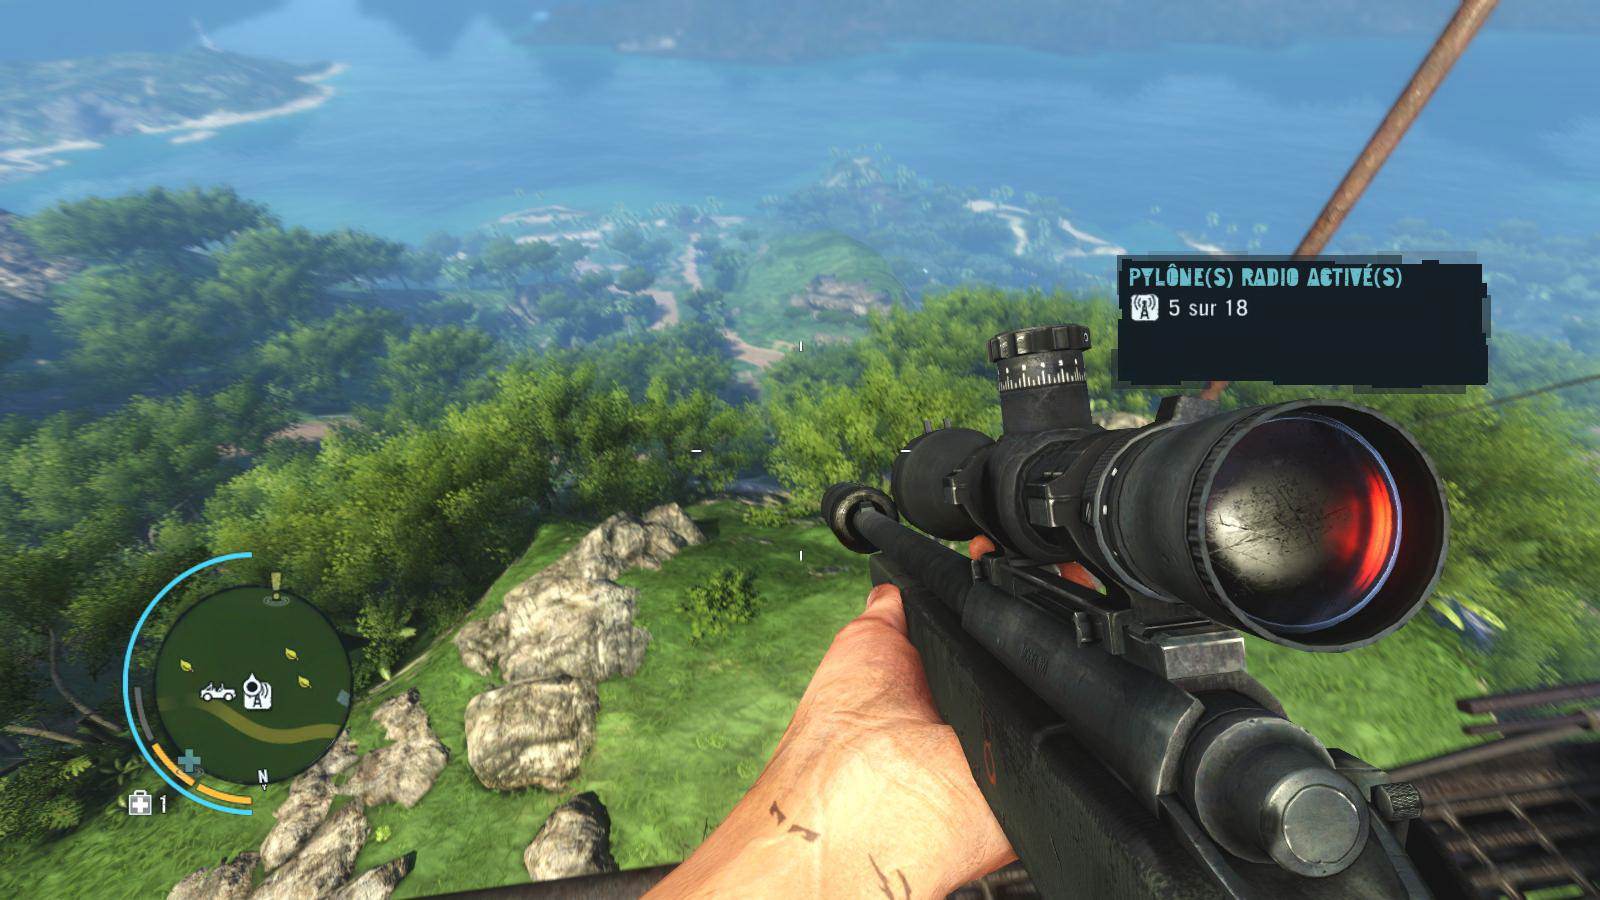 Yogesh Patil Far Cry 3 Deluxe Edition Free Download Pc